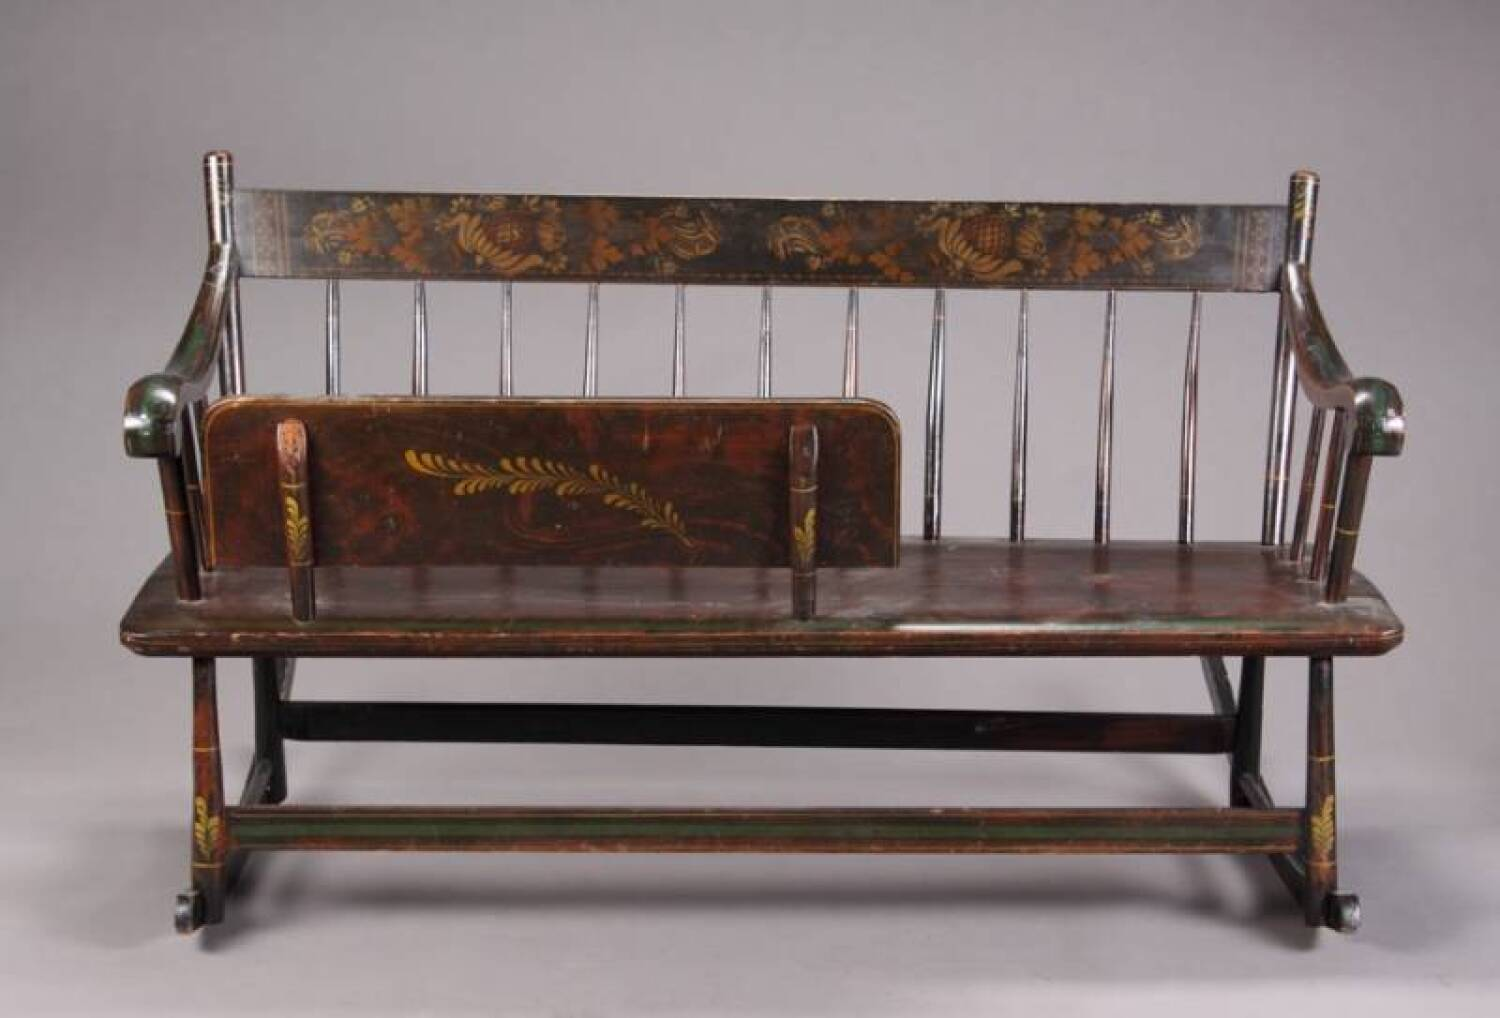 Antique Wooden Bench10